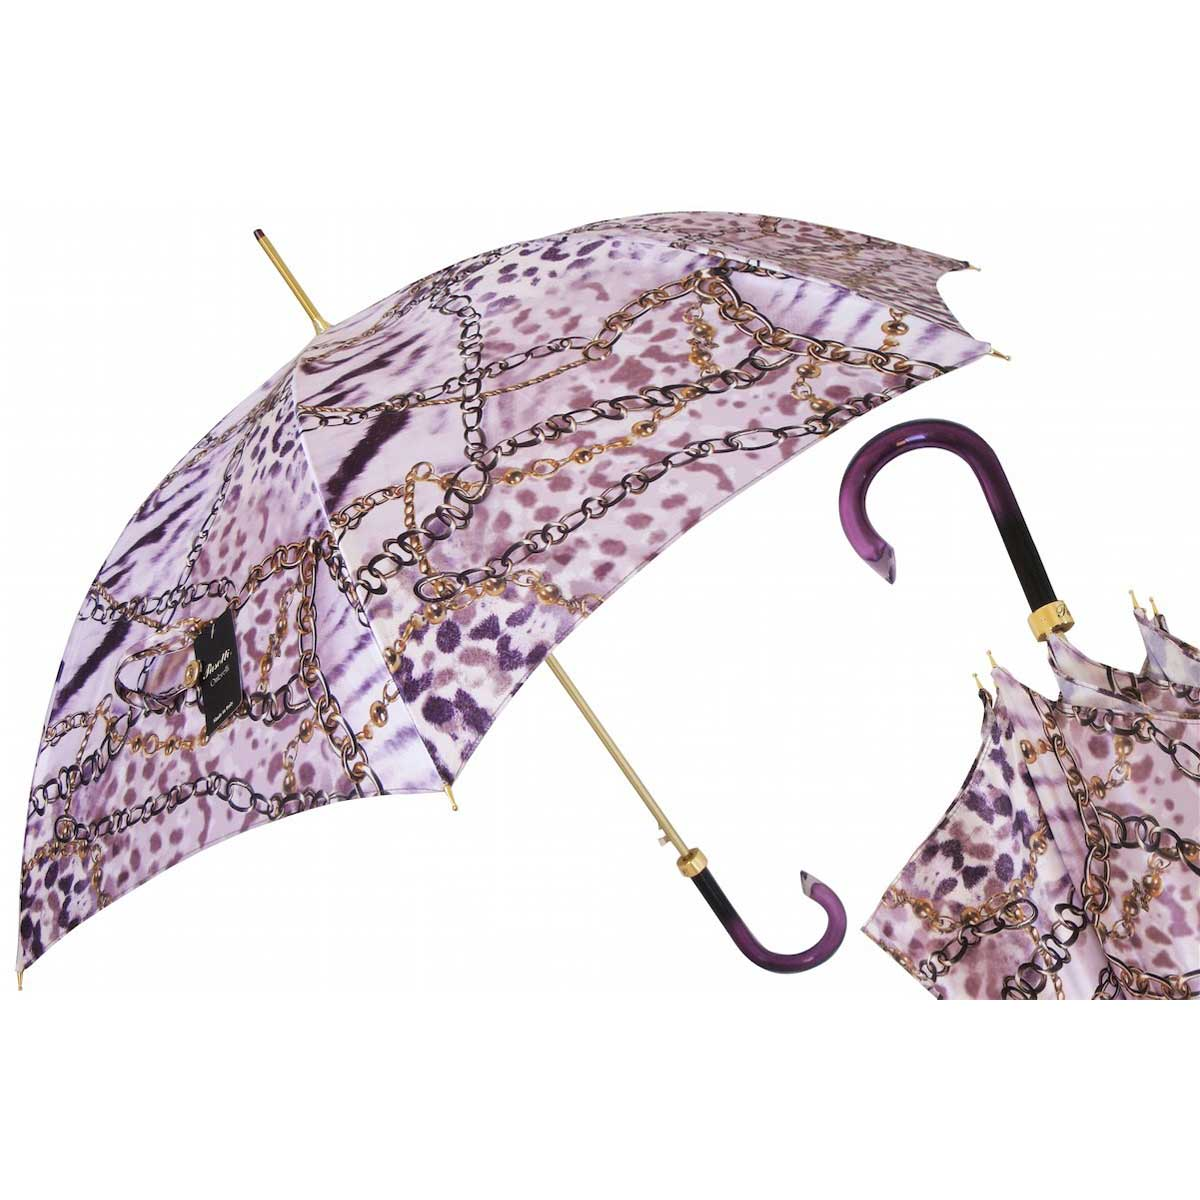 Pasotti Purple Nuance Chains Print Animalier Women's Umbrella